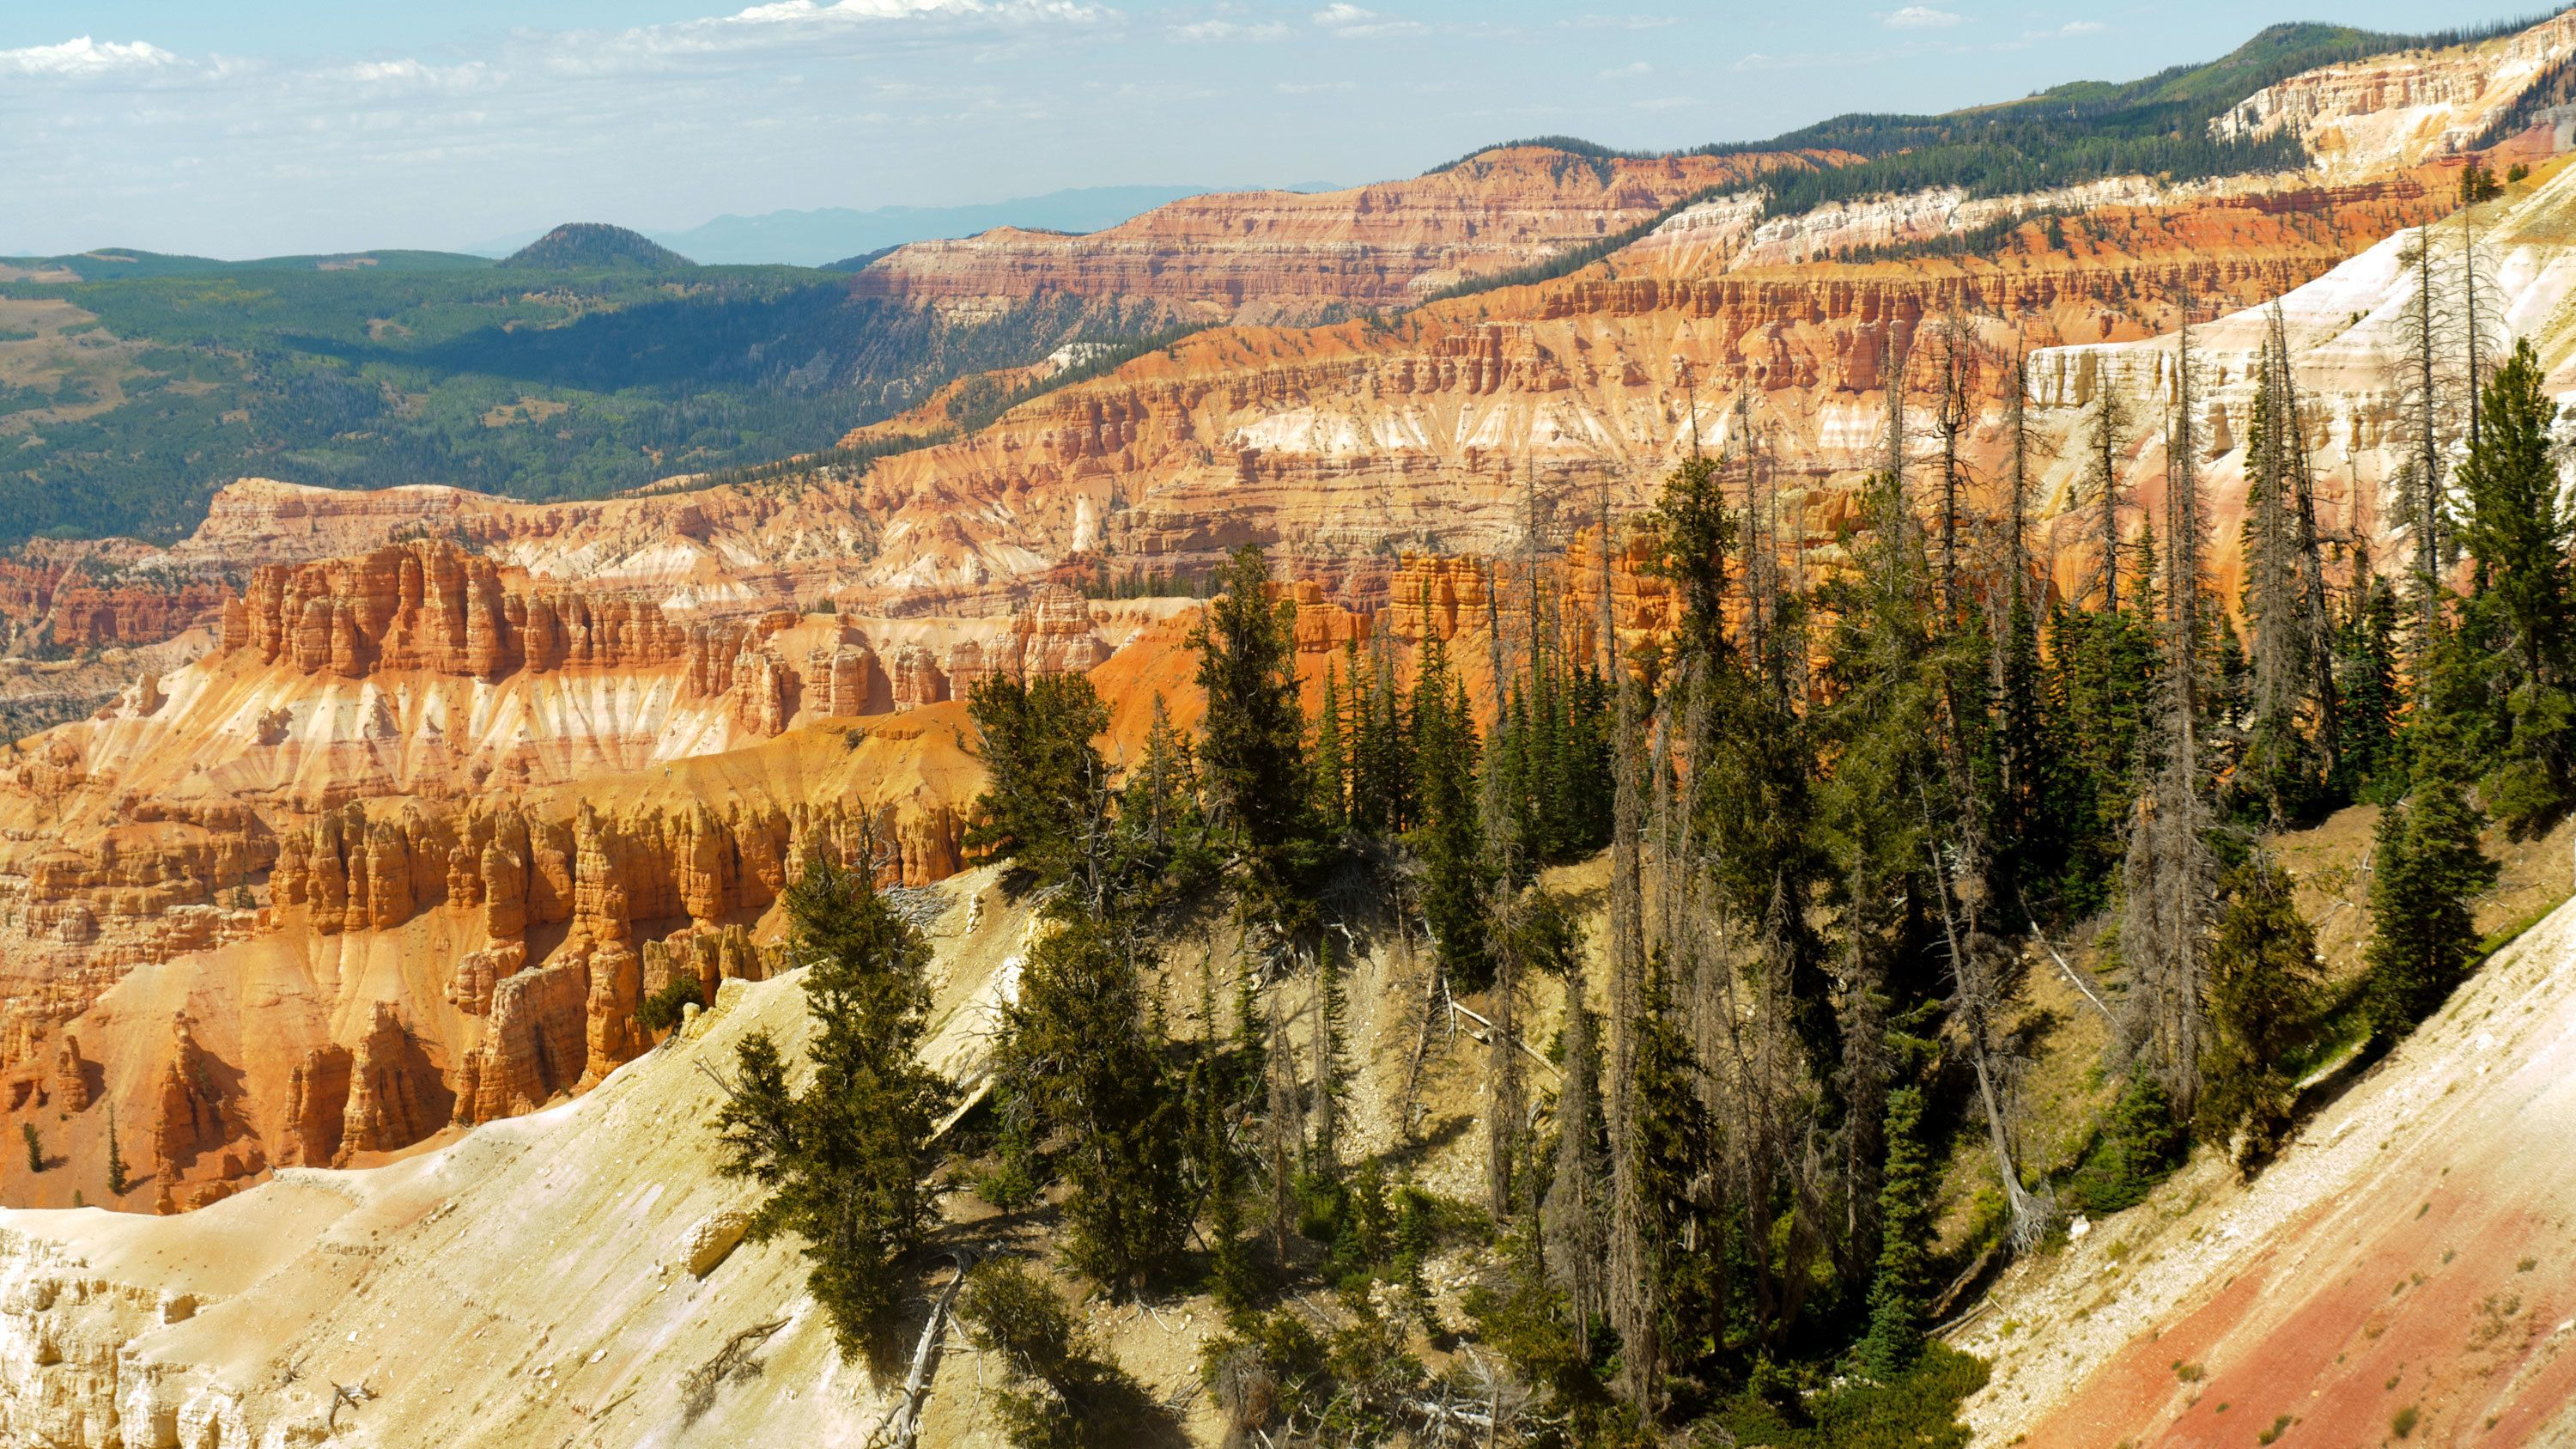 Trees and colorful cliffs of the Grand Canyon